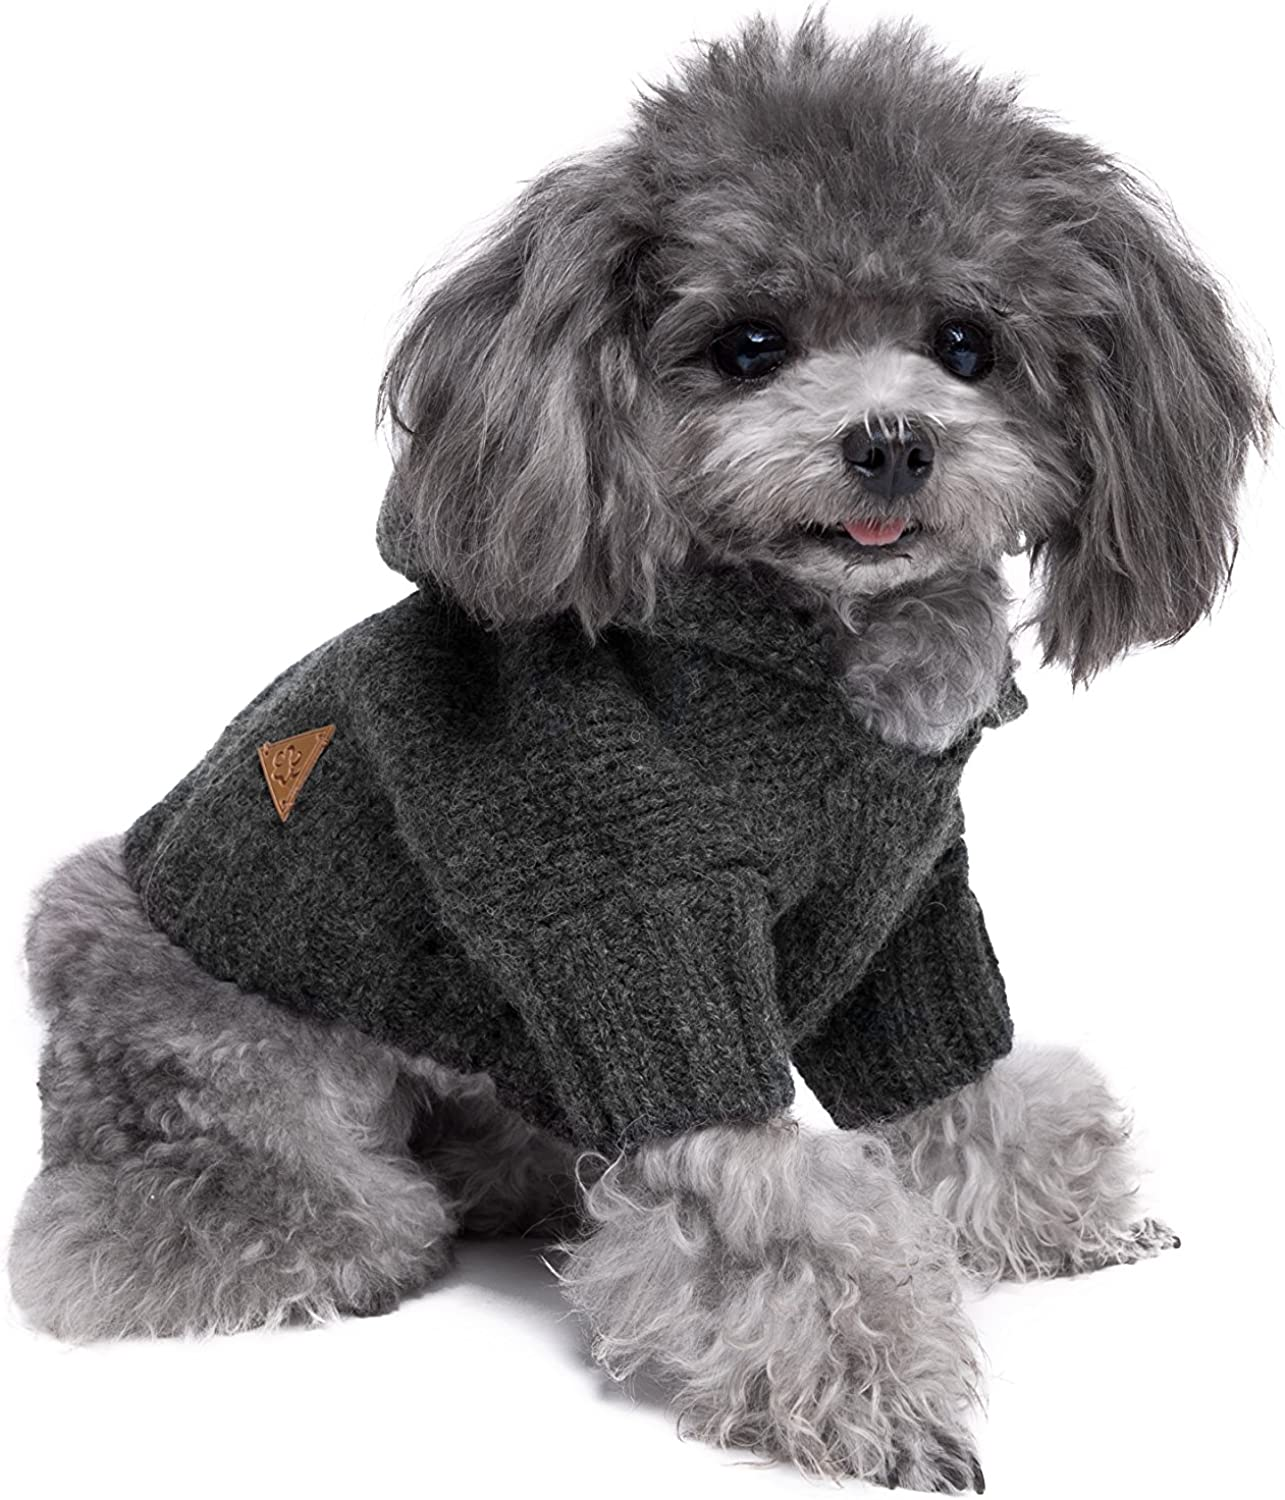 golden Paw Premium Dog Hoodie, Dog Sweater, Dog Apparel, Warm Dog Clothes ... (Medium, Charcoal)